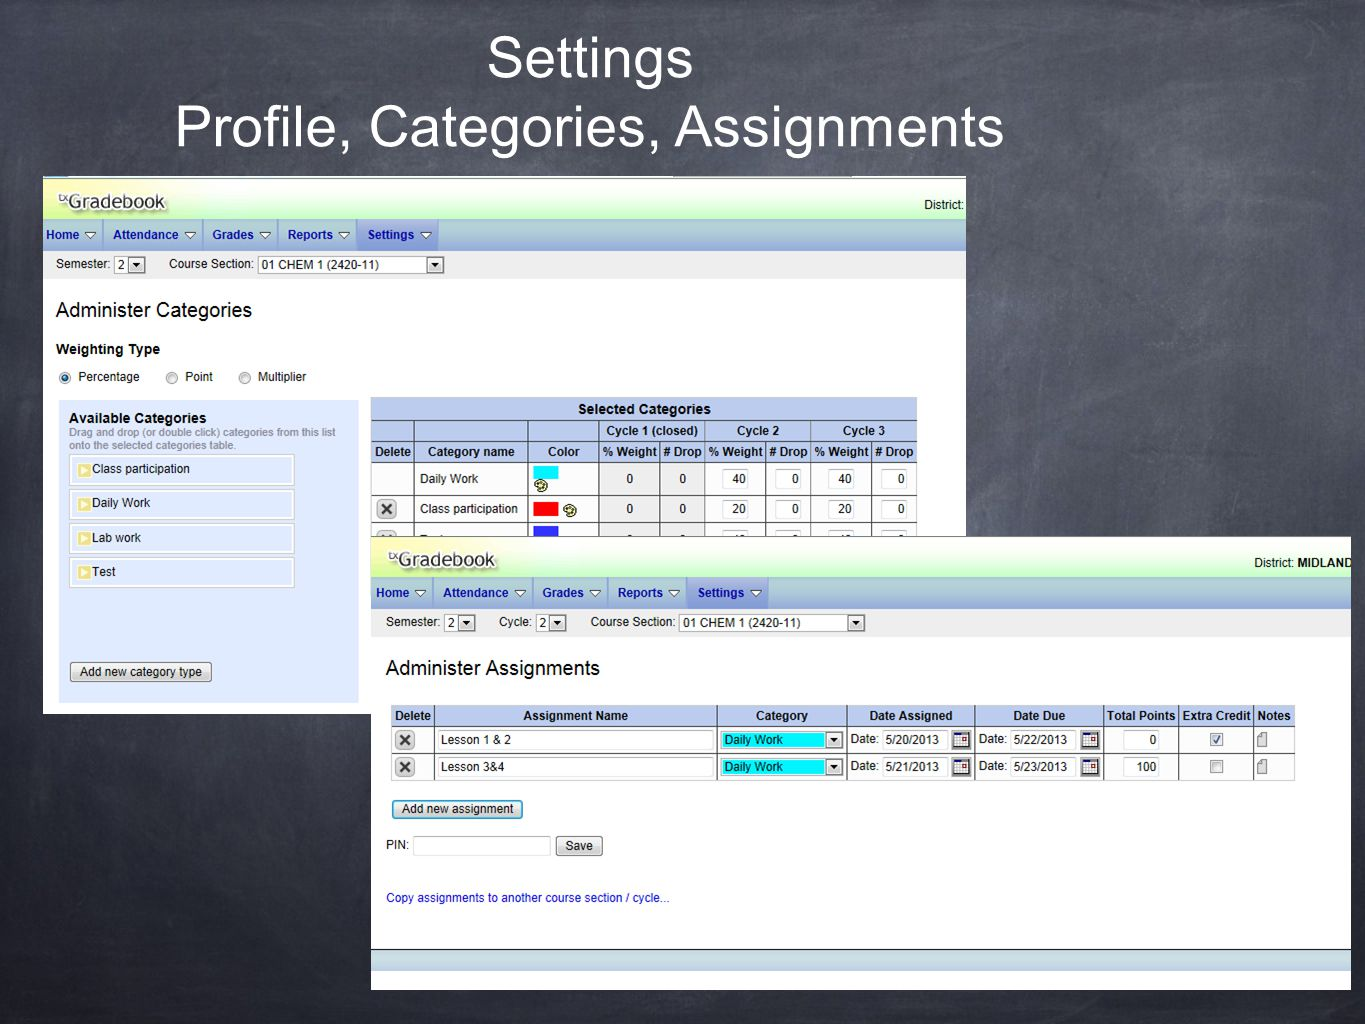 Settings Profile, Categories, Assignments